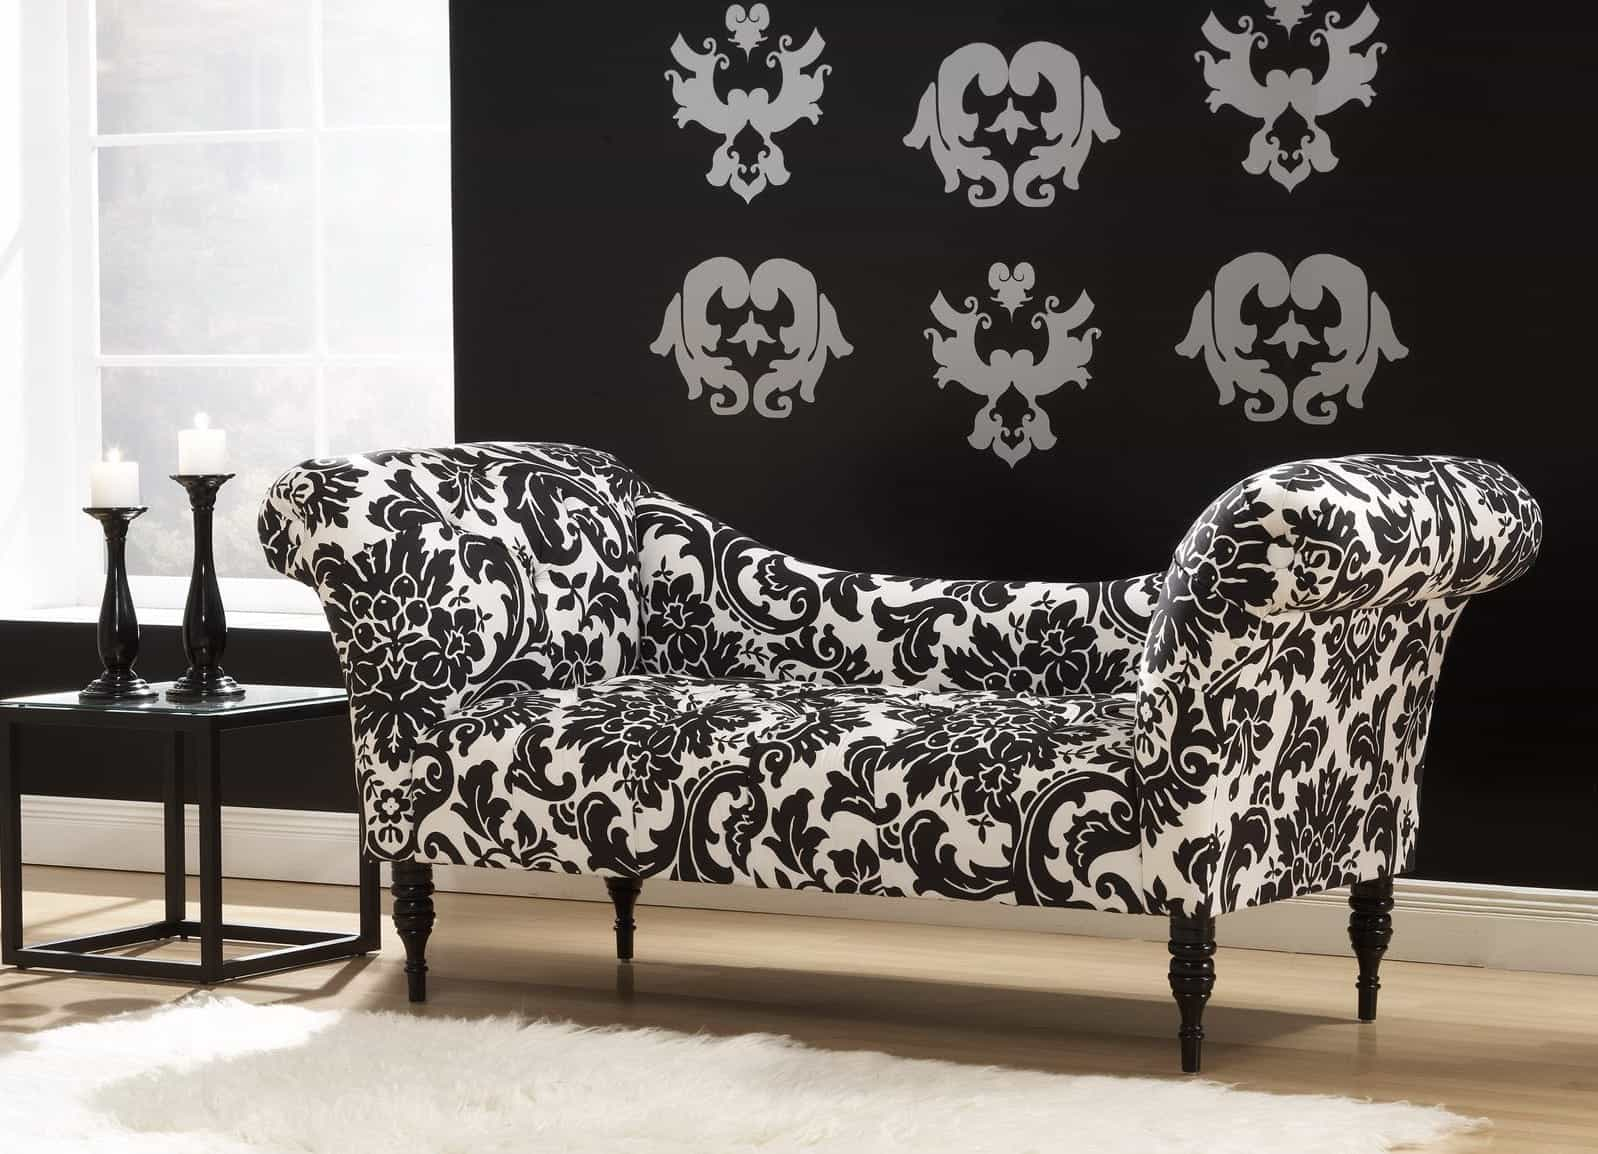 Featured Image of Black And White Modern Floral Patterned Sofa